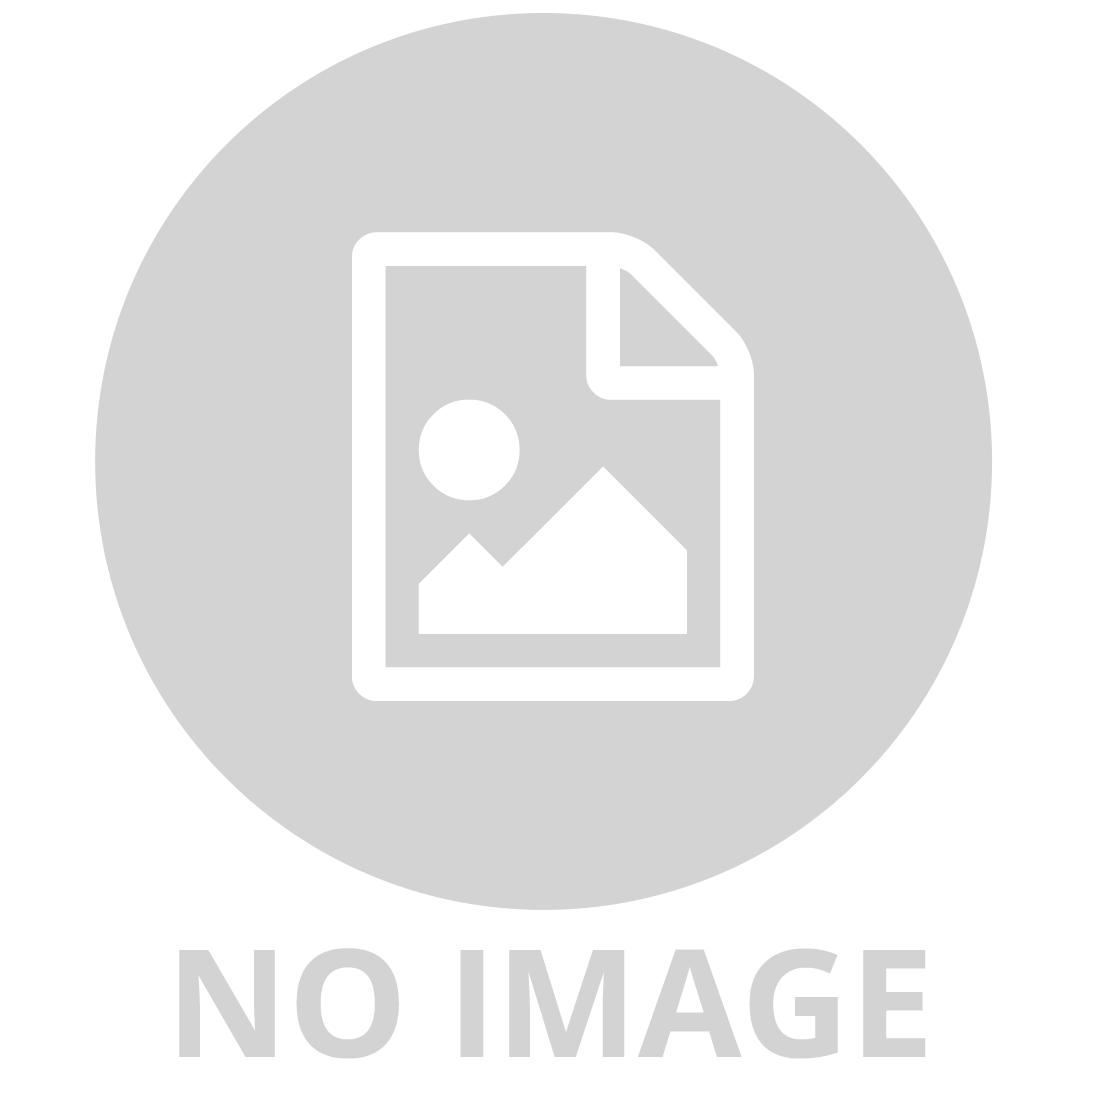 BAKUGAN ULTRA BAKUGAN 1 PACK SEASON 2